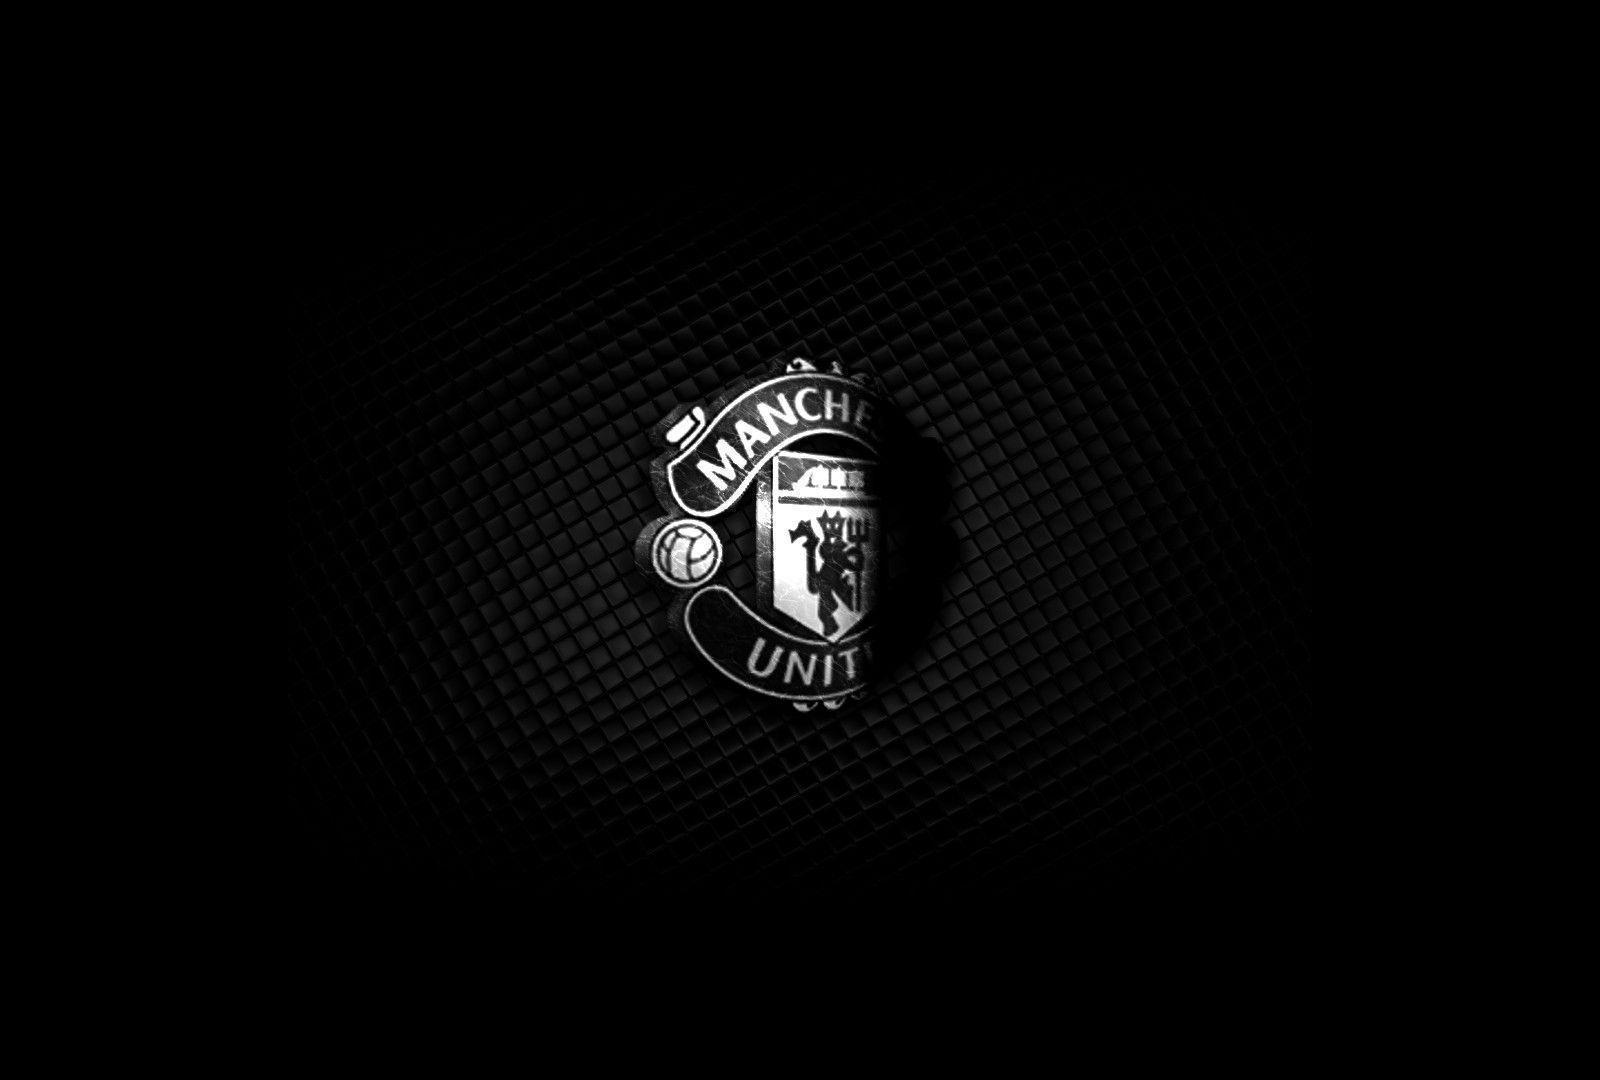 manchester united wallpaper hd 2 - AHD Images